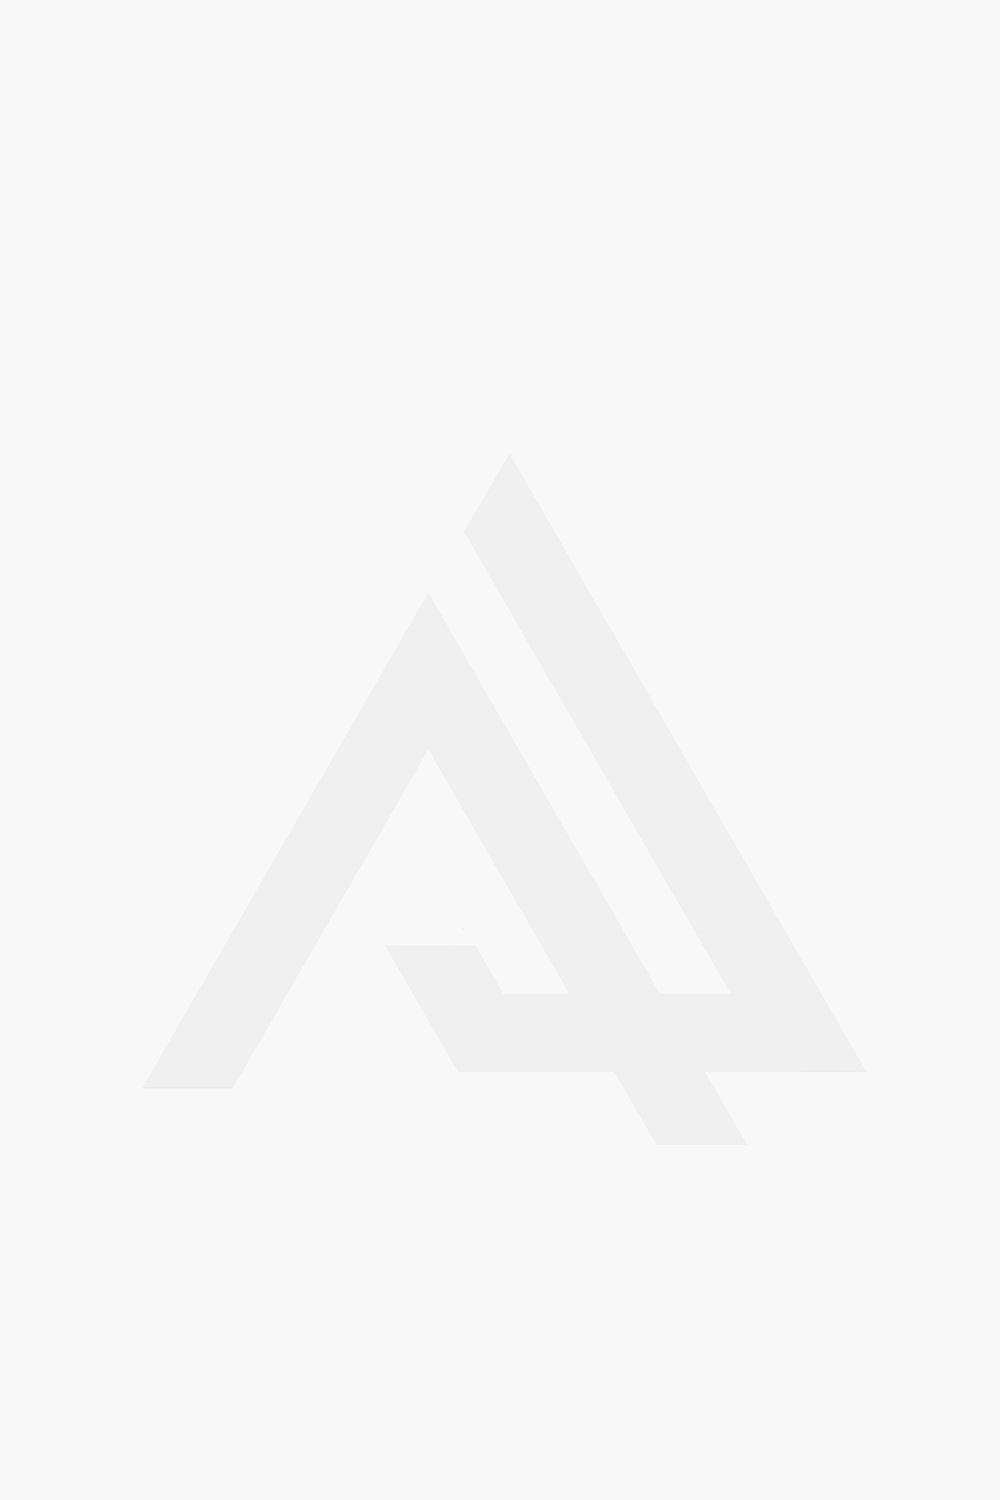 Midnight Floral Cushion Covers, Set of 2, Black & Red